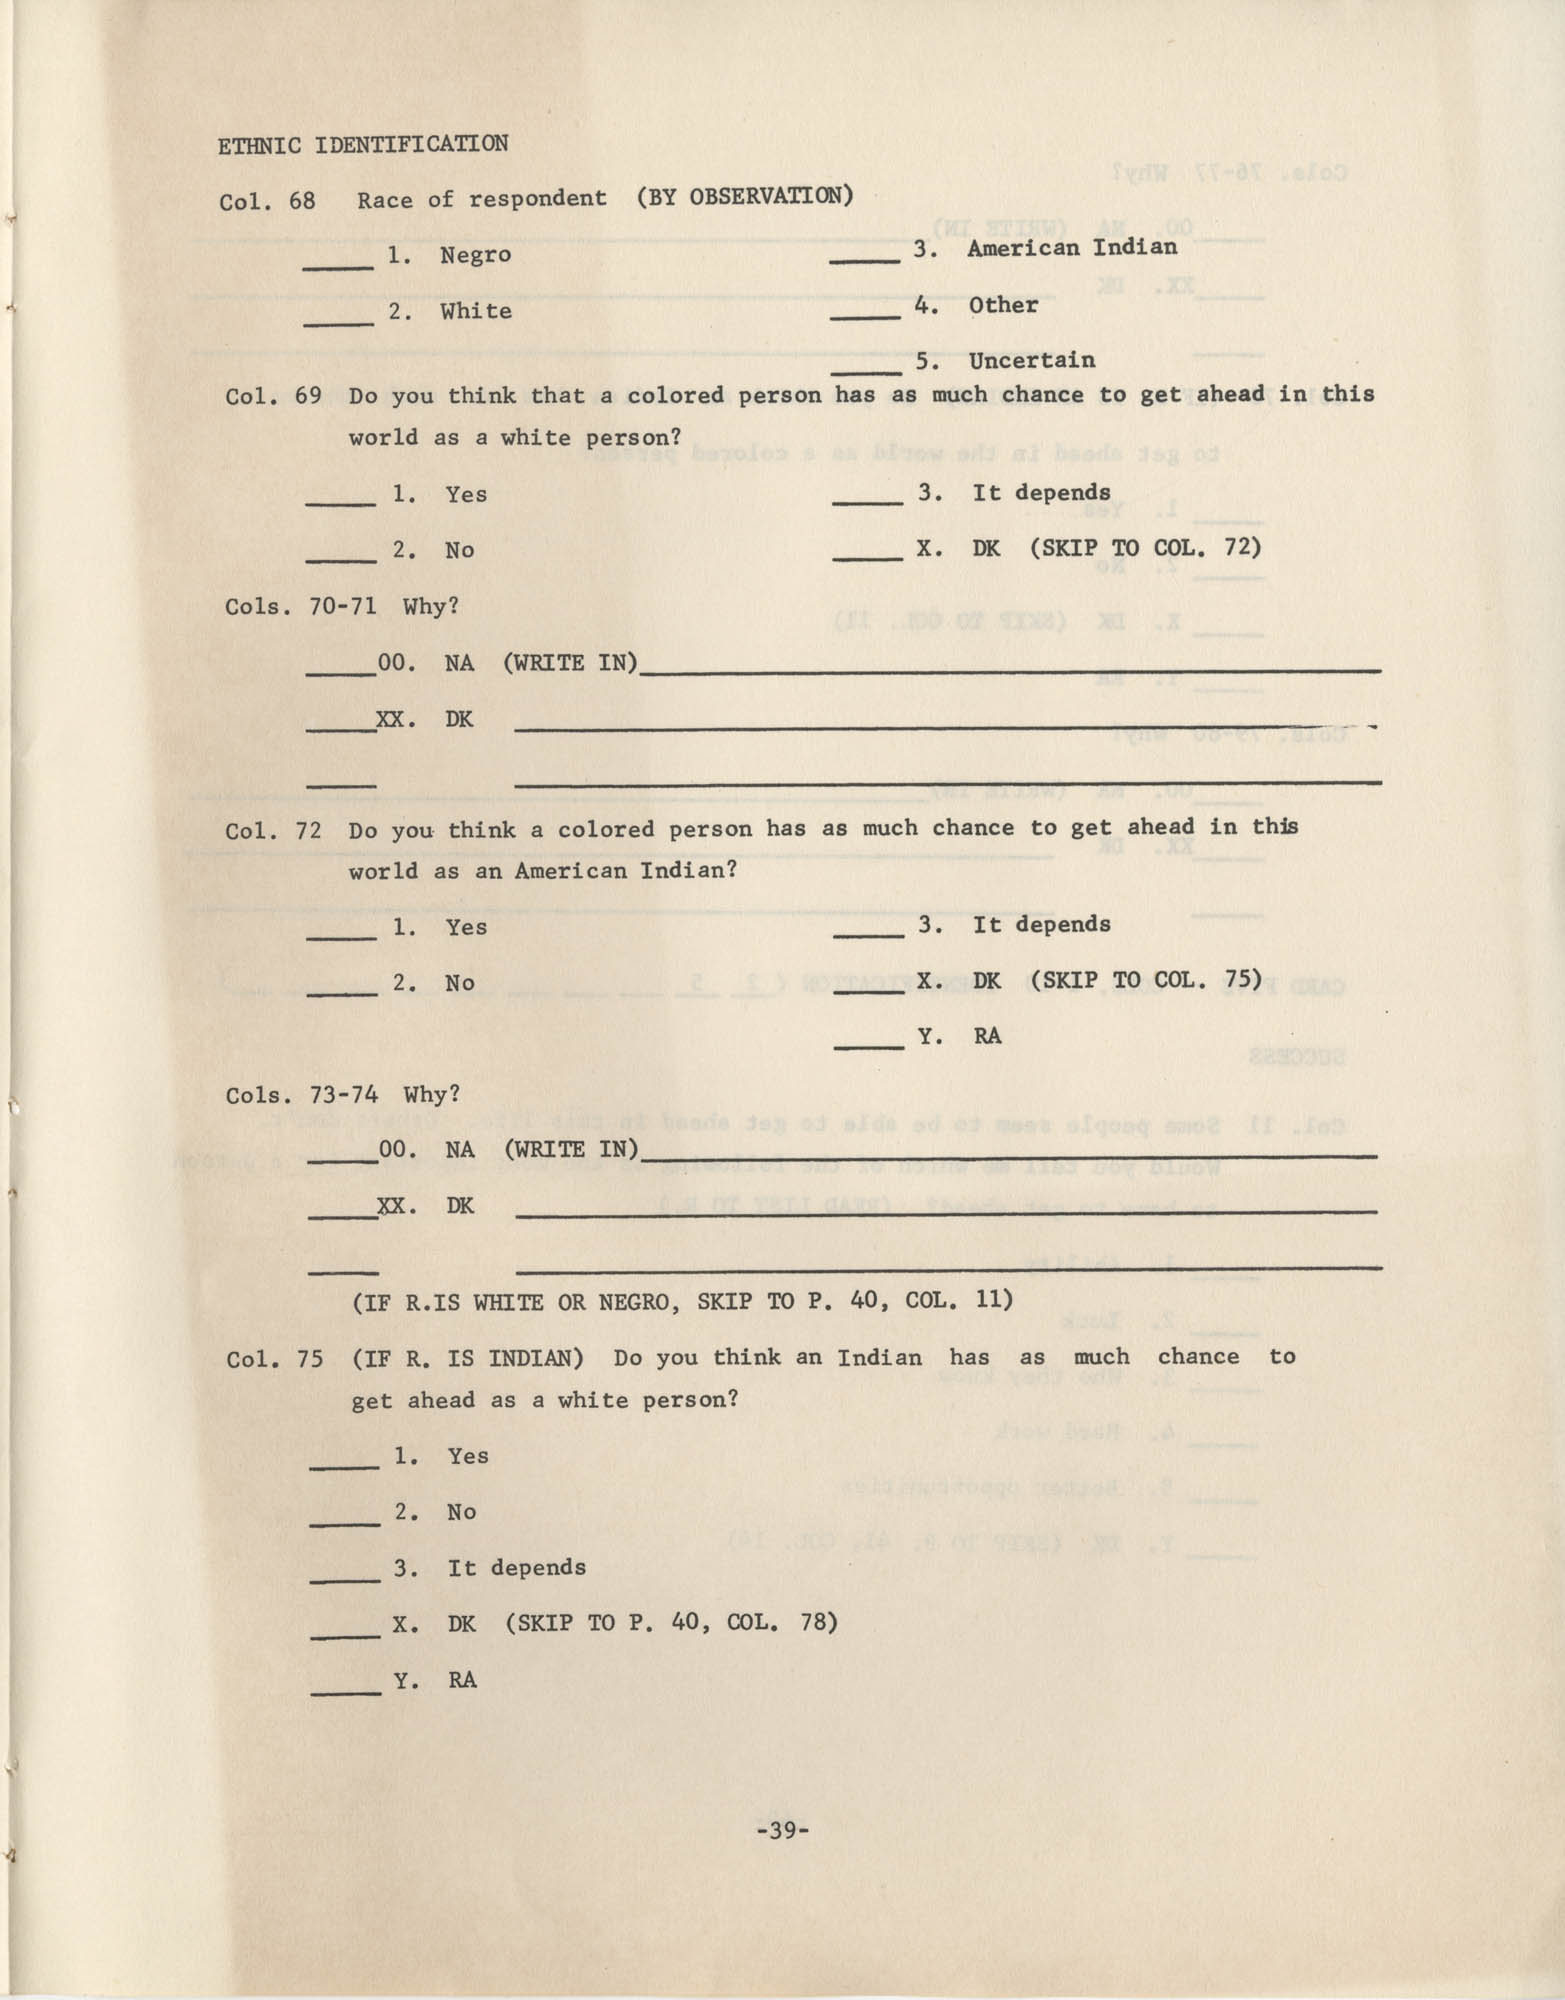 North Carolina Socio-Economic Survey, Page 39